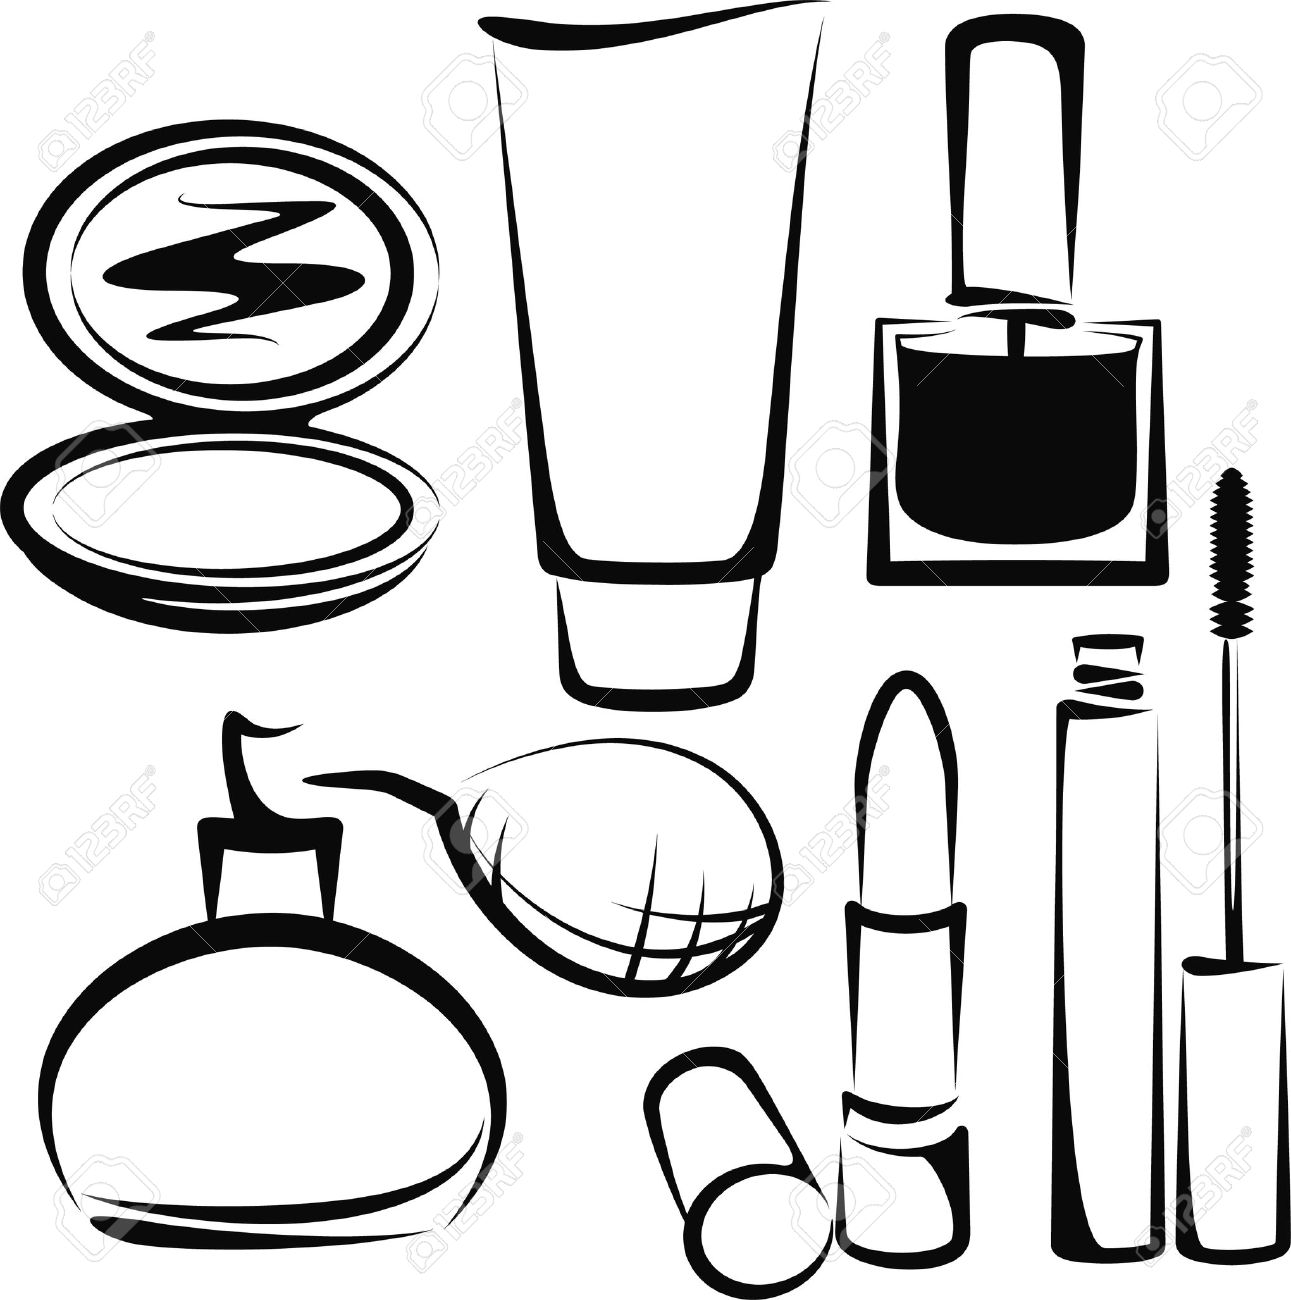 Cosmetic clipart image freeuse library Cosmetics Clipart | Free download best Cosmetics Clipart on ... image freeuse library